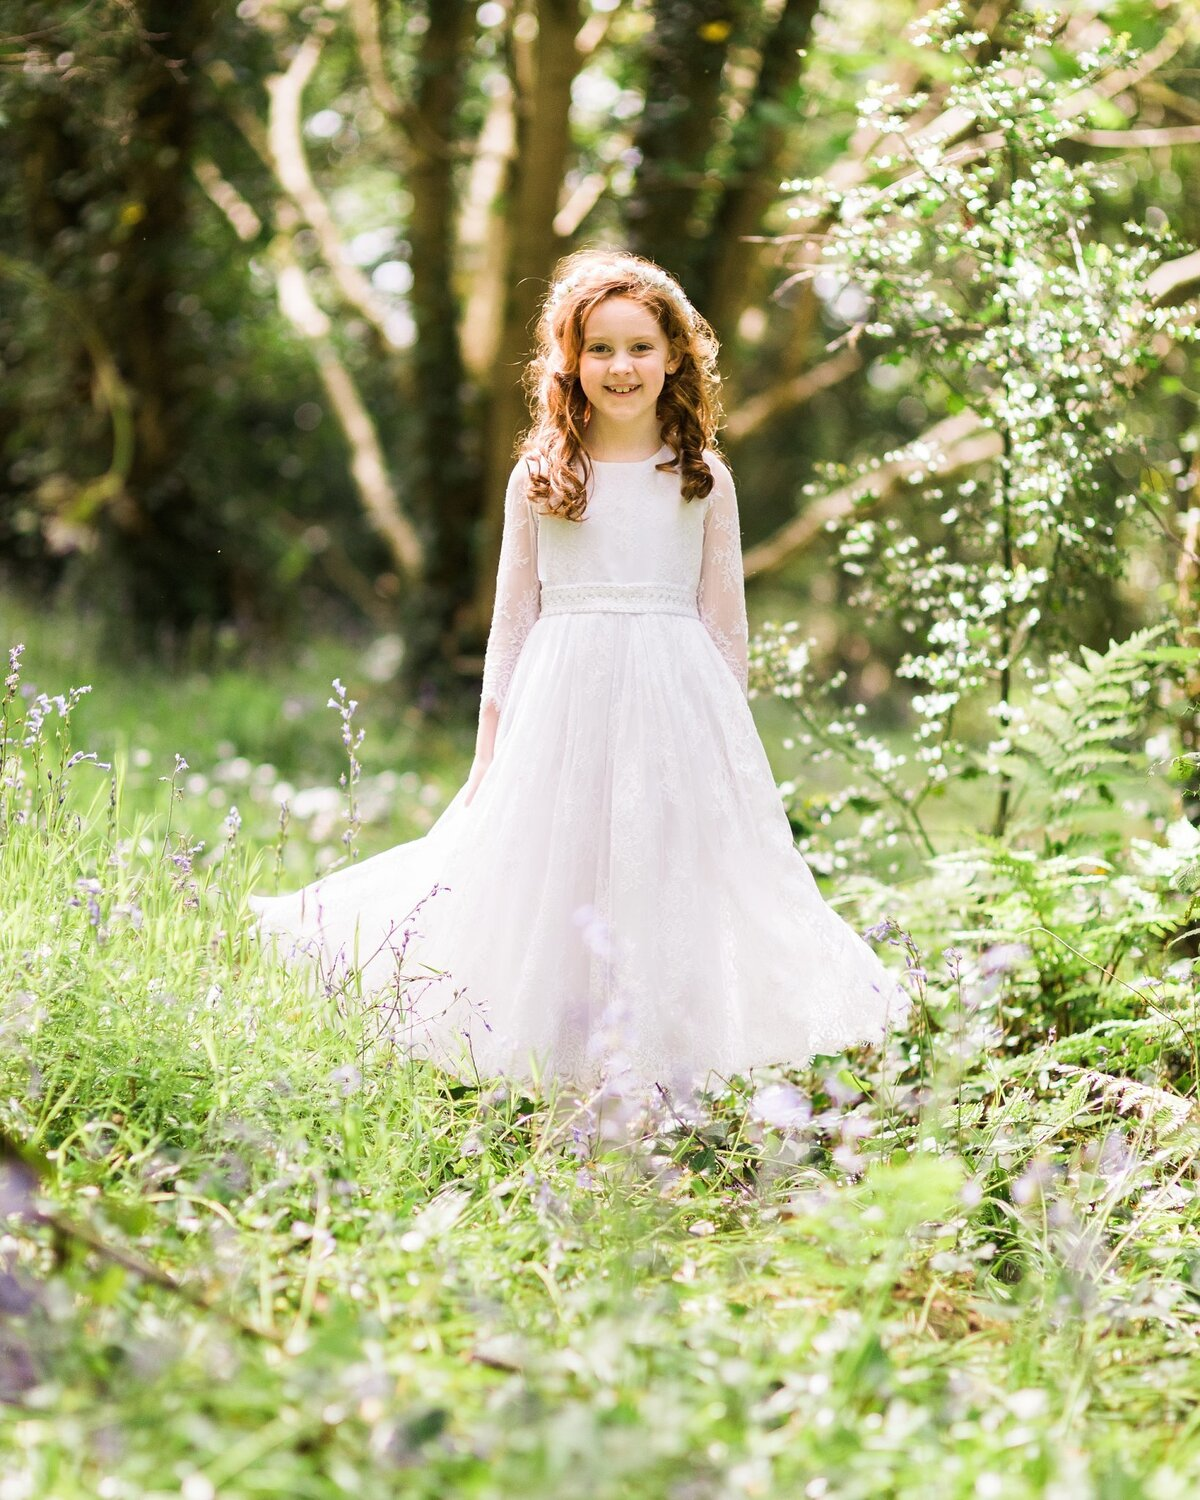 derry-holy-communion-photos-gracie-2